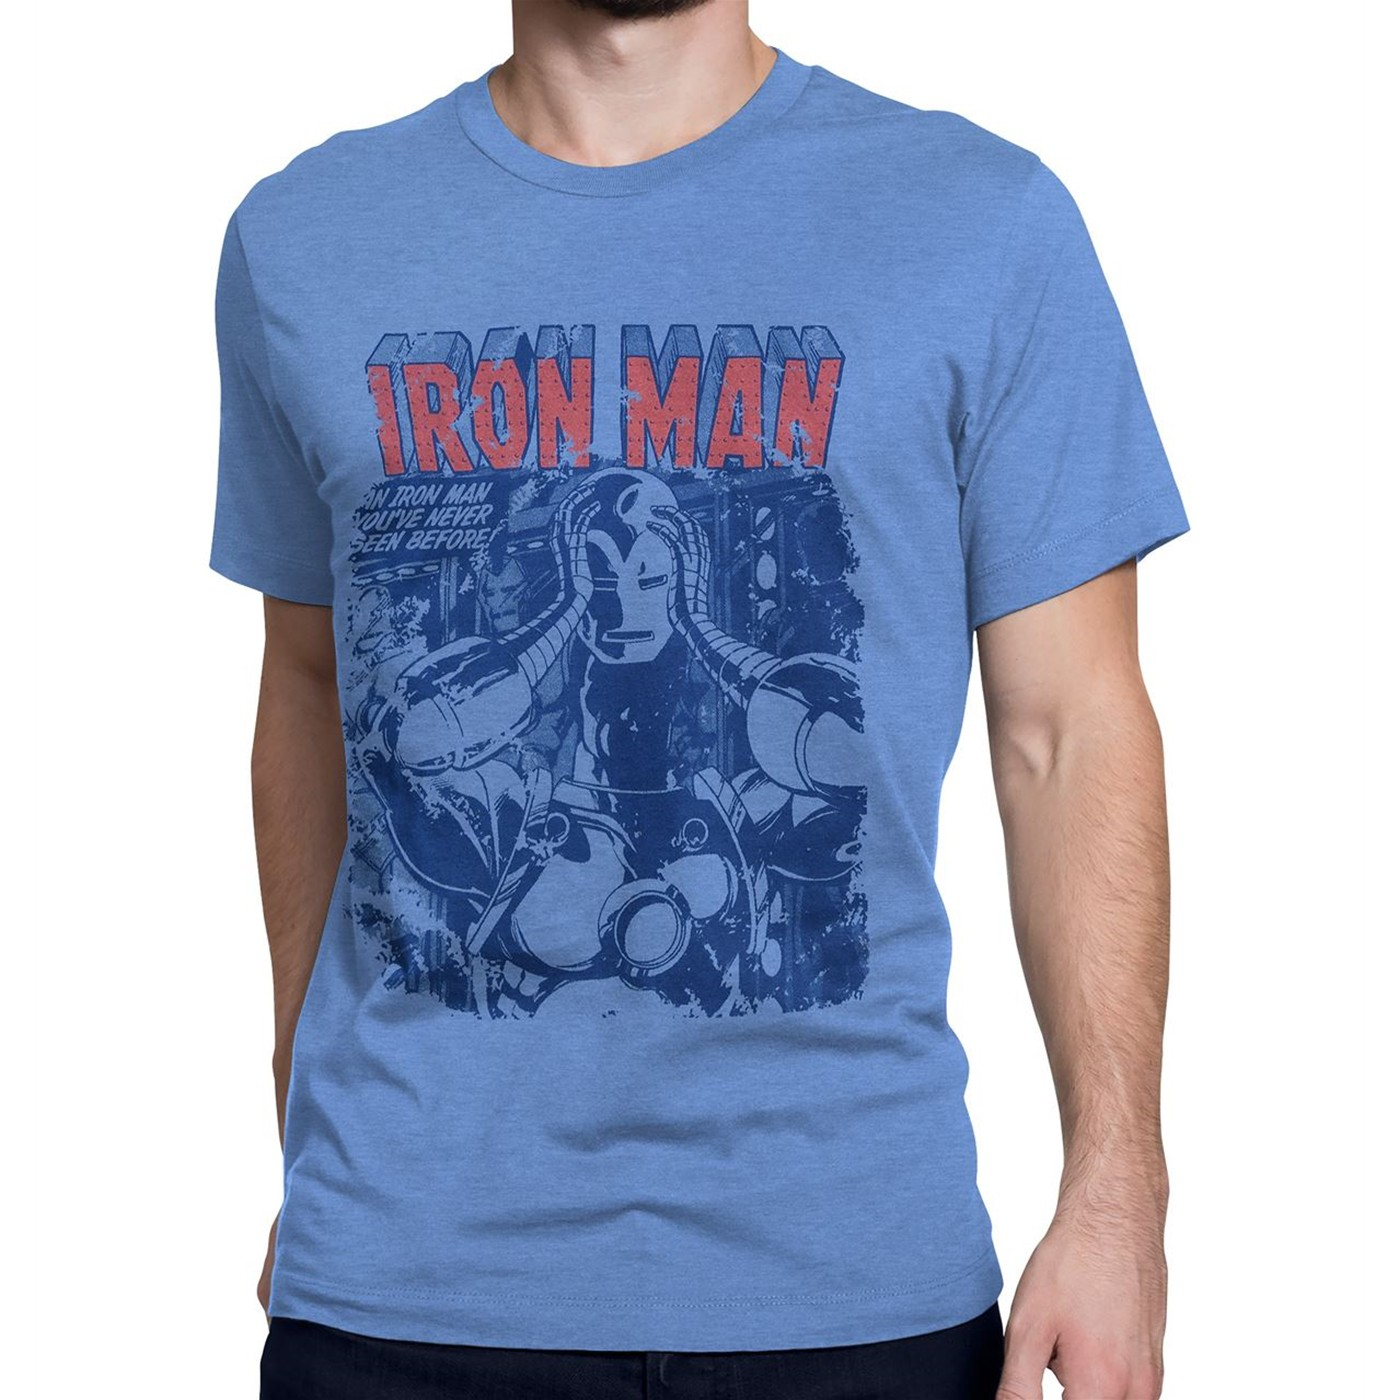 Iron Man a New Hero Revealed Men's T-Shirt